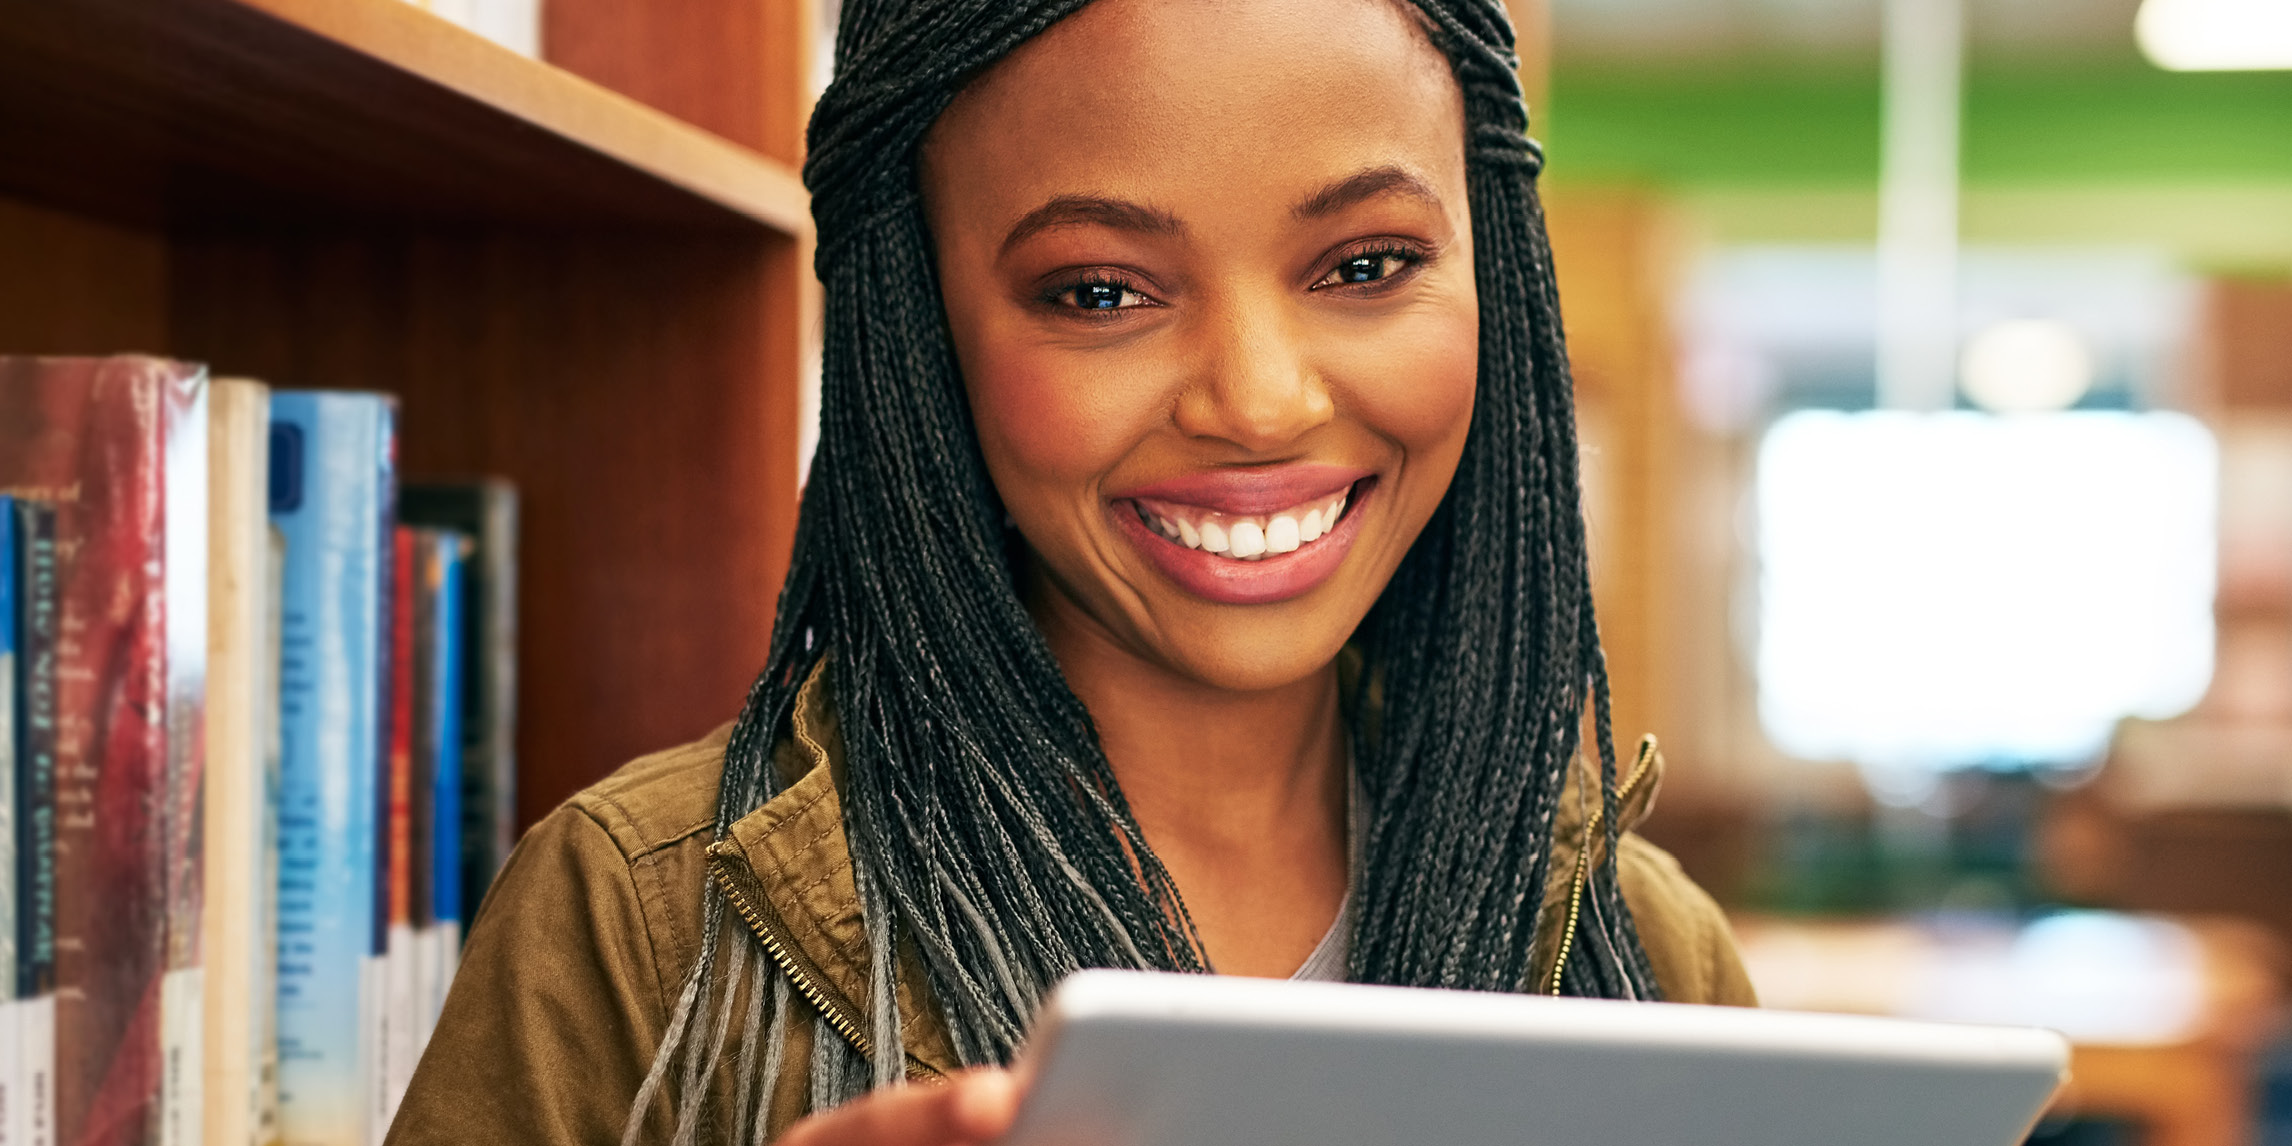 A woman smiling and holding a tablet